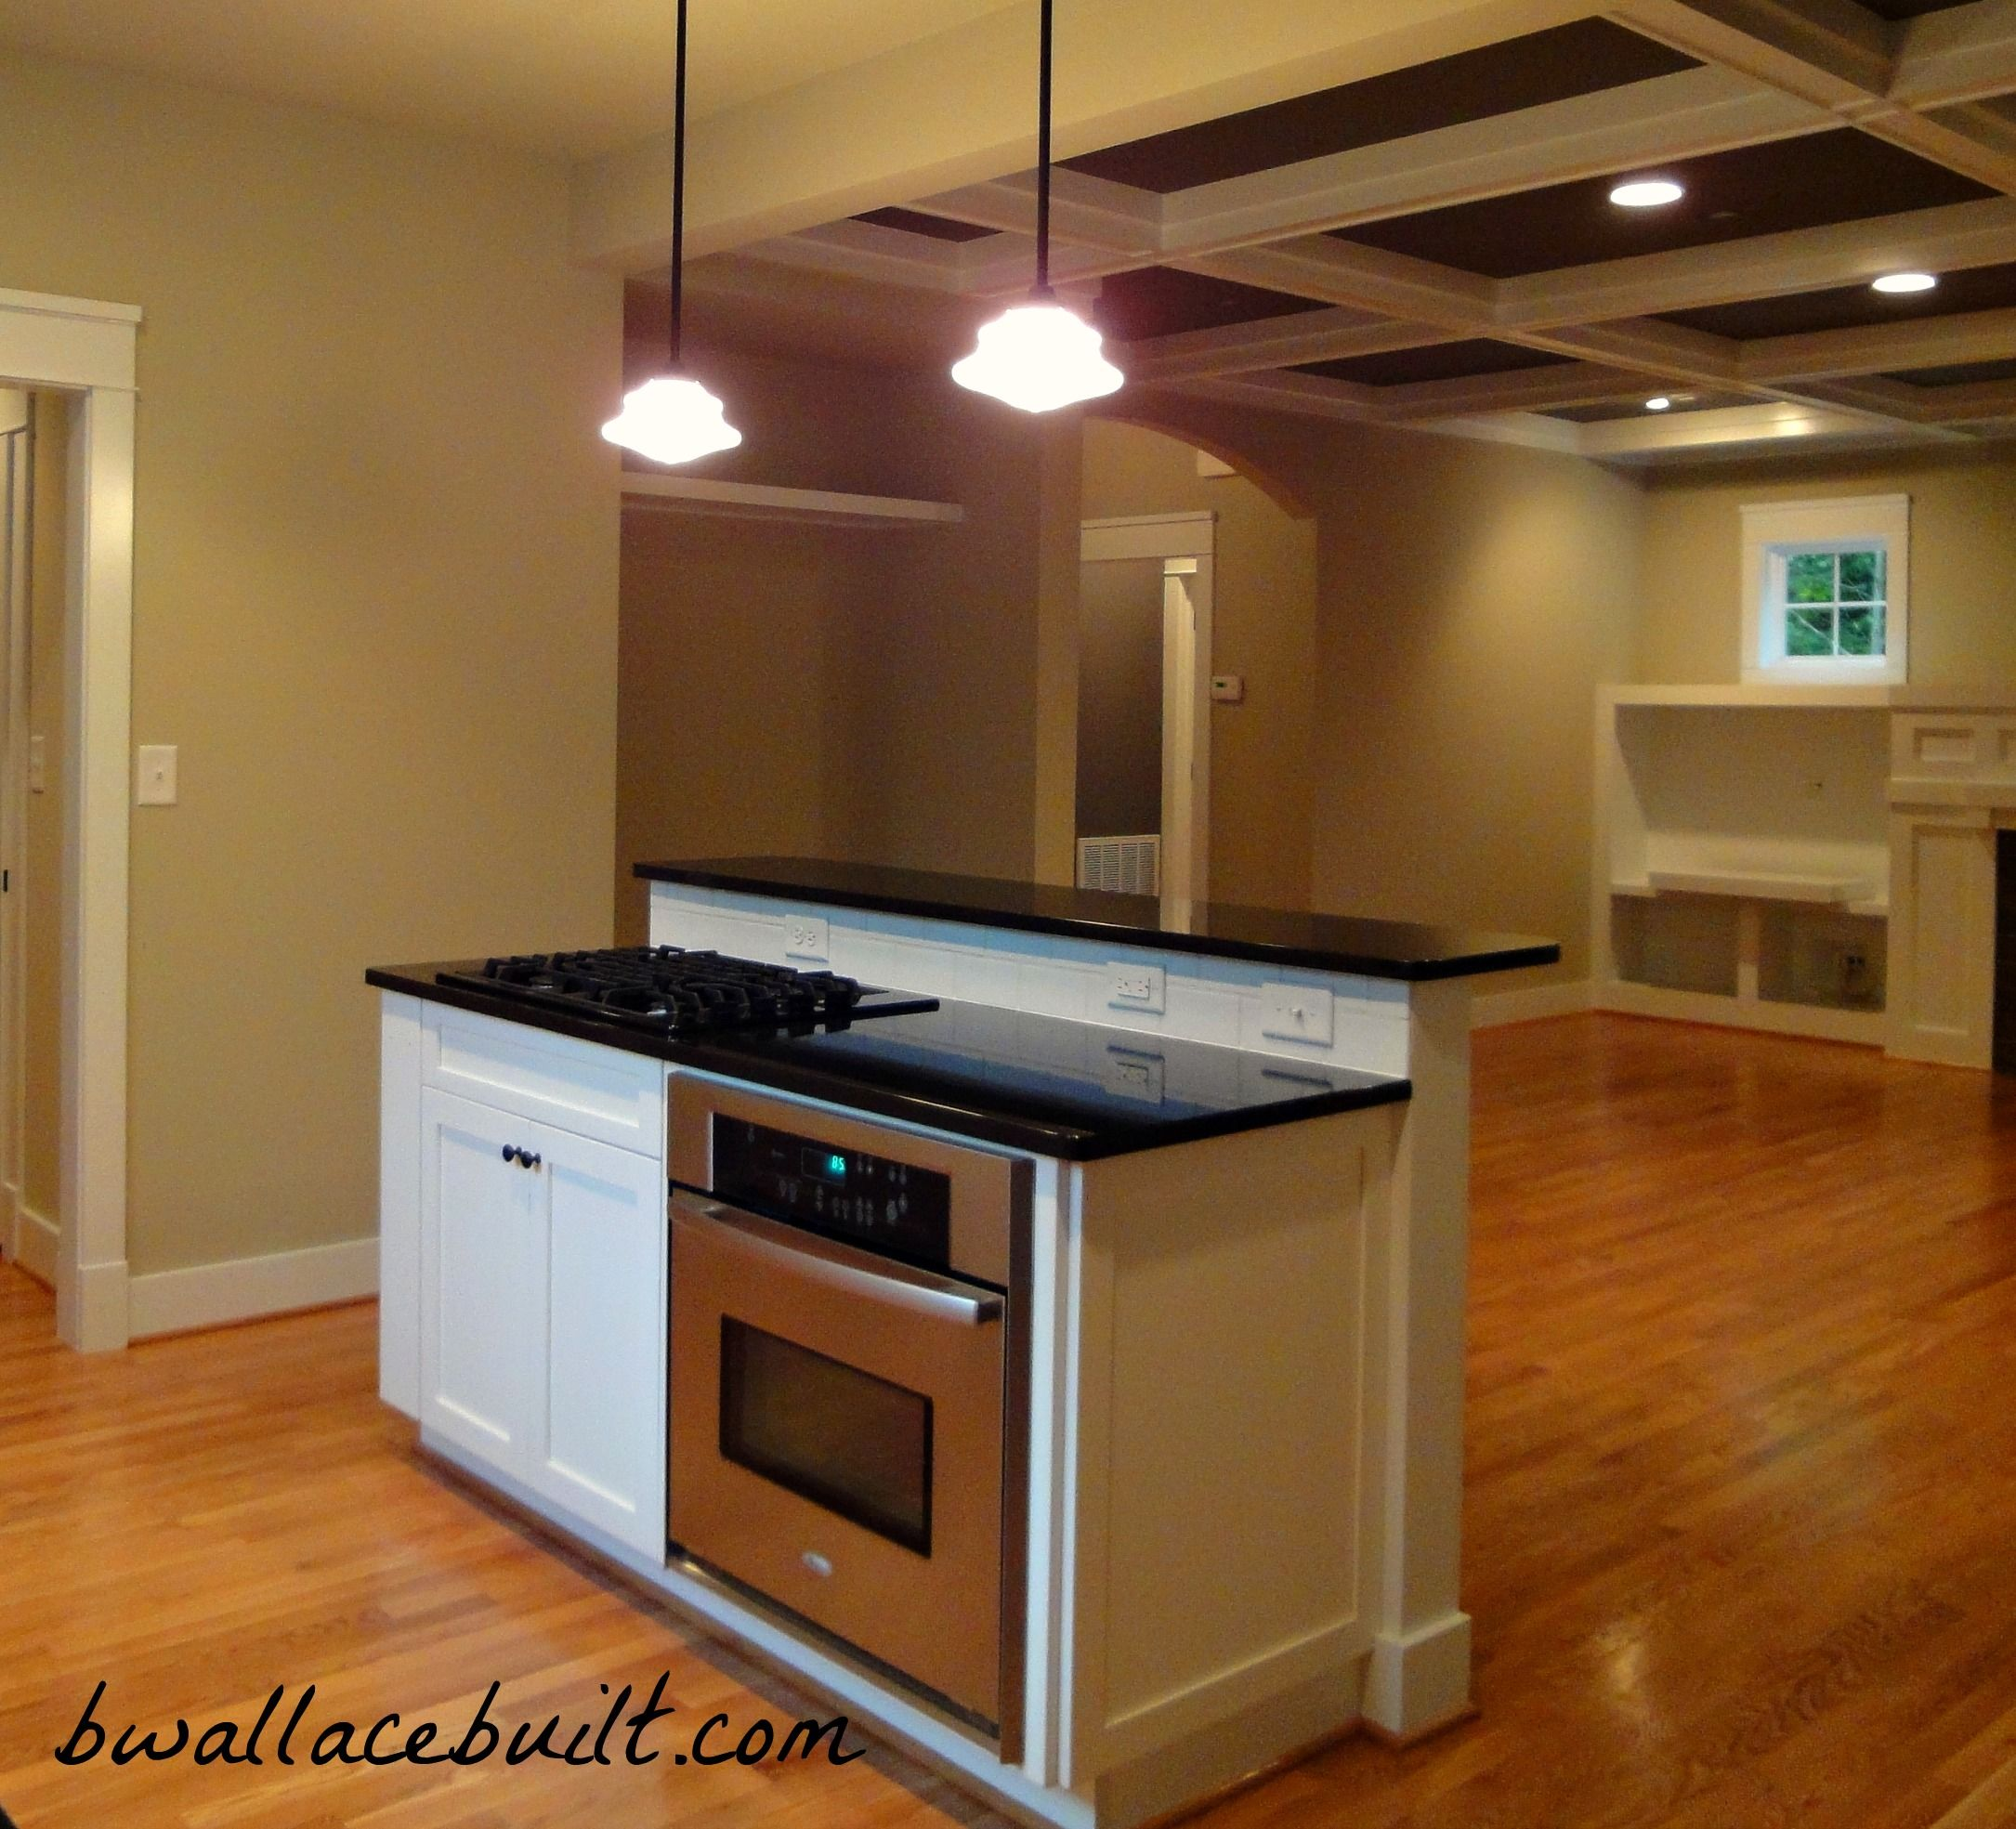 Kitchen island with separate stove top from oven. | Perfect Kitchen on